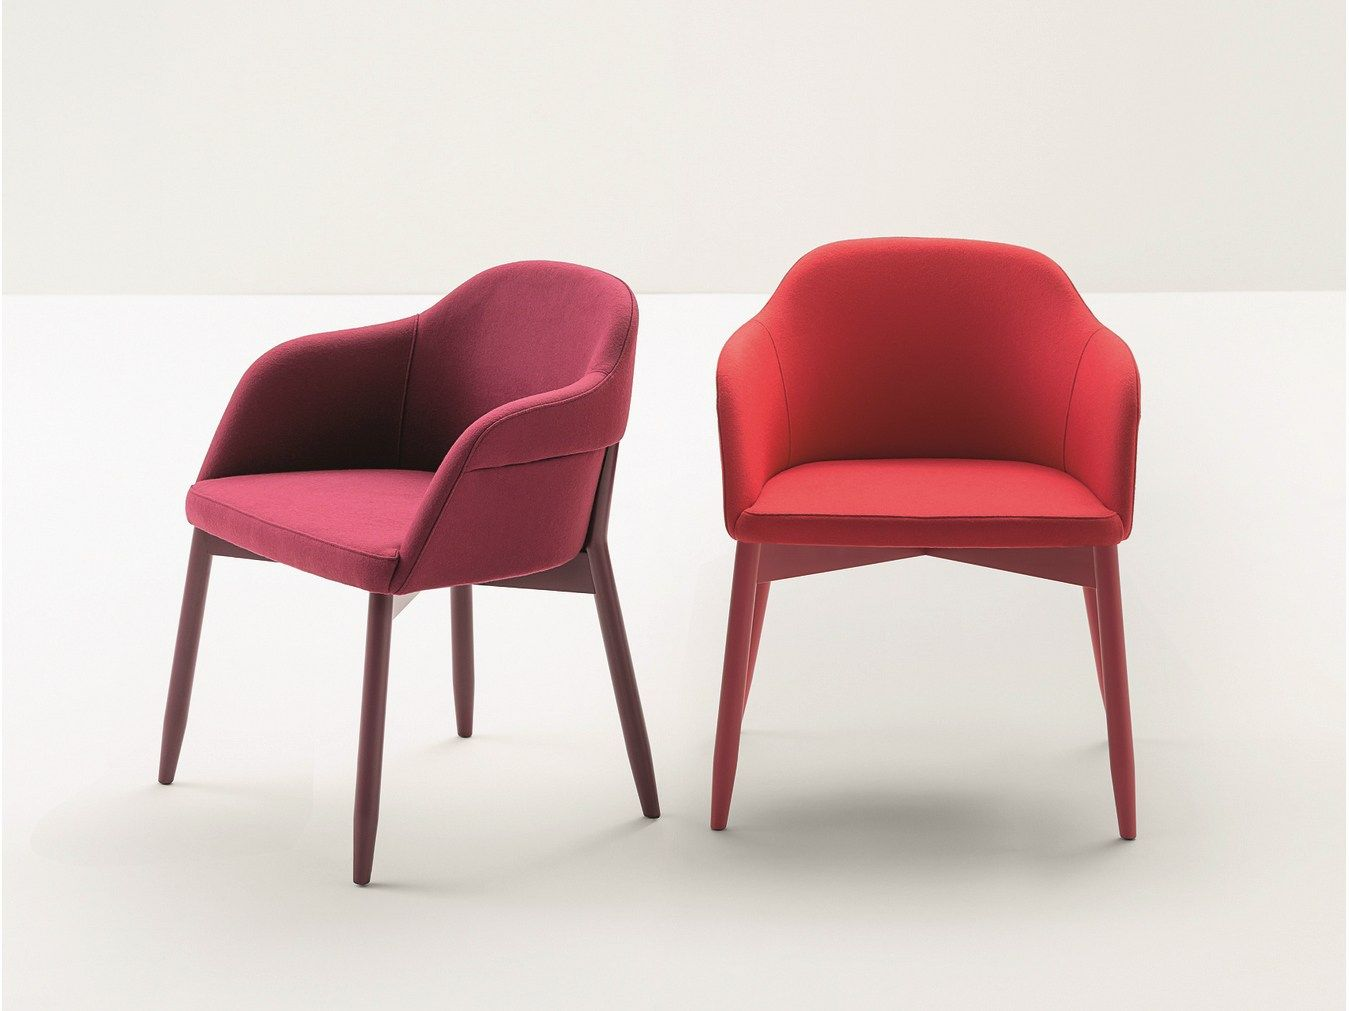 Genial Upholstered Easy Chair With Armrests SPY   BILLIANI